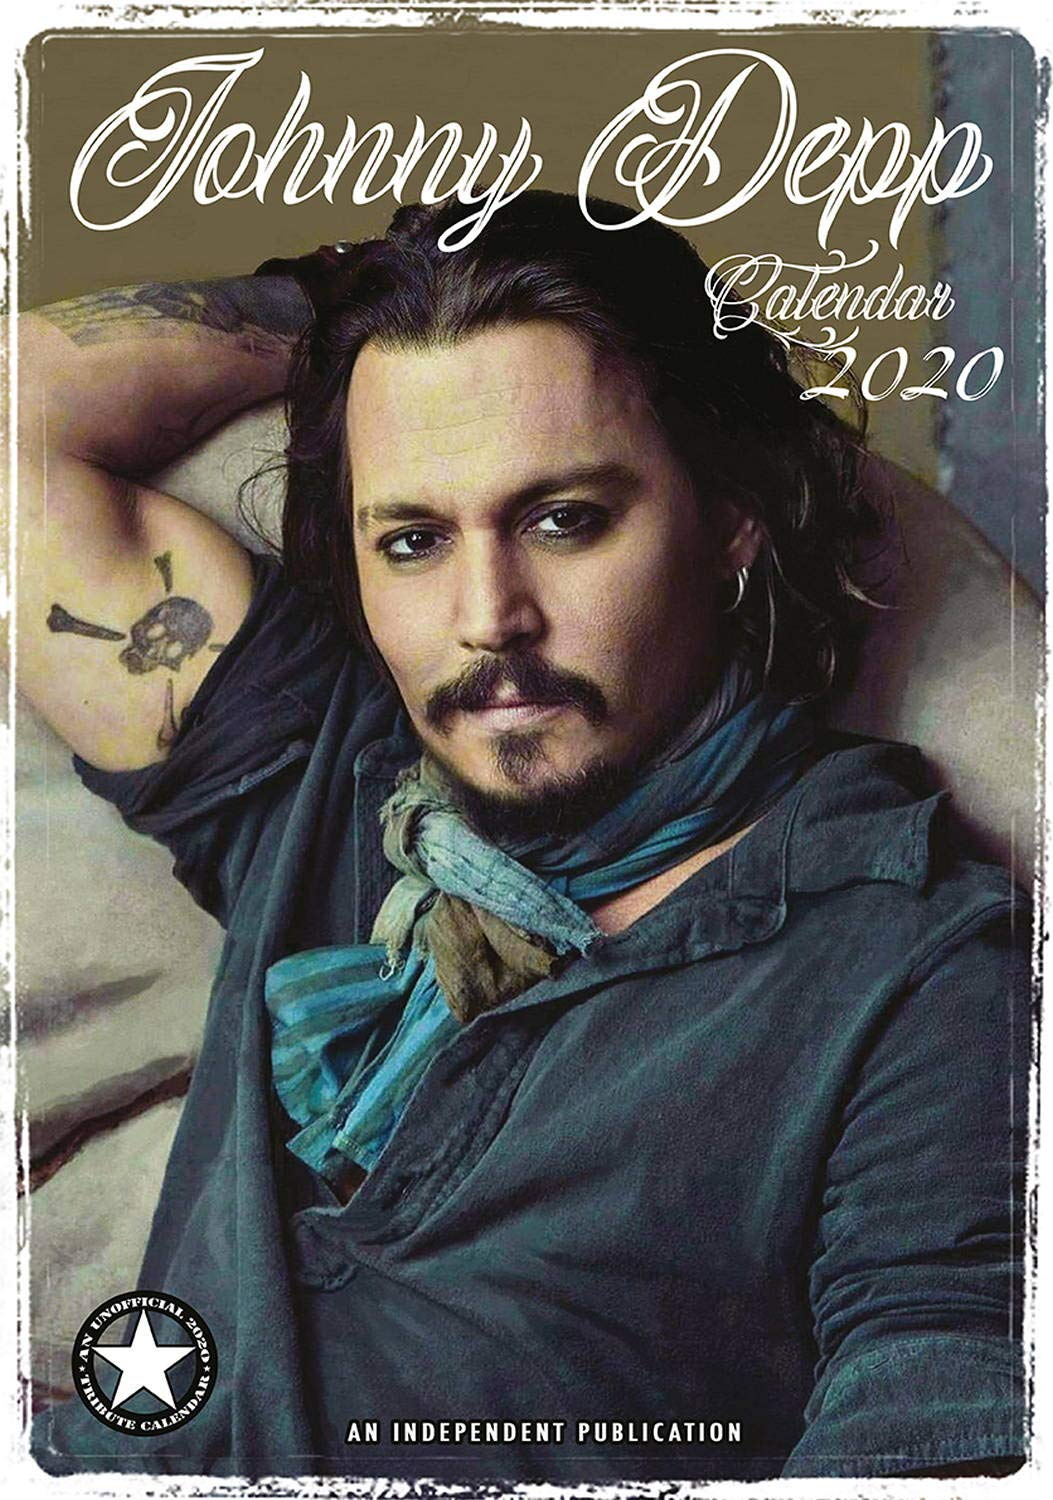 Johnny Depp Calendar - Calendars 2019 - 2020 Wall Calendars - Movie Wall Calendar - Sexy Men Calendar - Poster Calendar - 12 Month Calendar by Dream (Multilingual Edition) by Dream Publishing